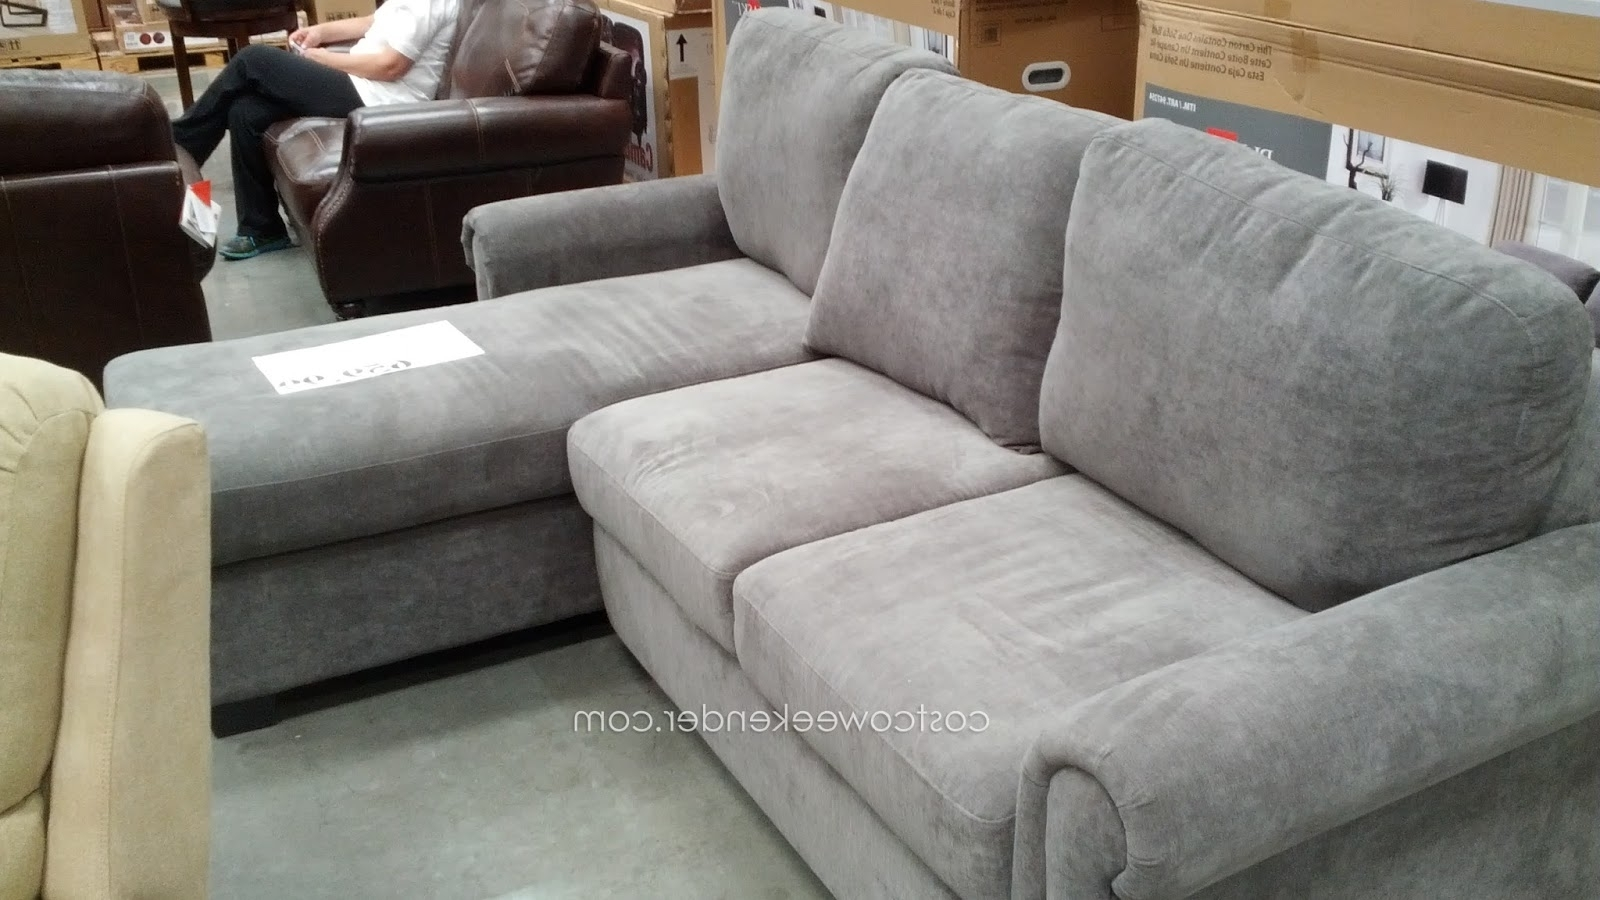 Most Popular Best Pulaski Sleeper Sofa Costco 86 For Sleeper Sofa With Chaise Regarding Costco Chaise Lounges (View 11 of 15)